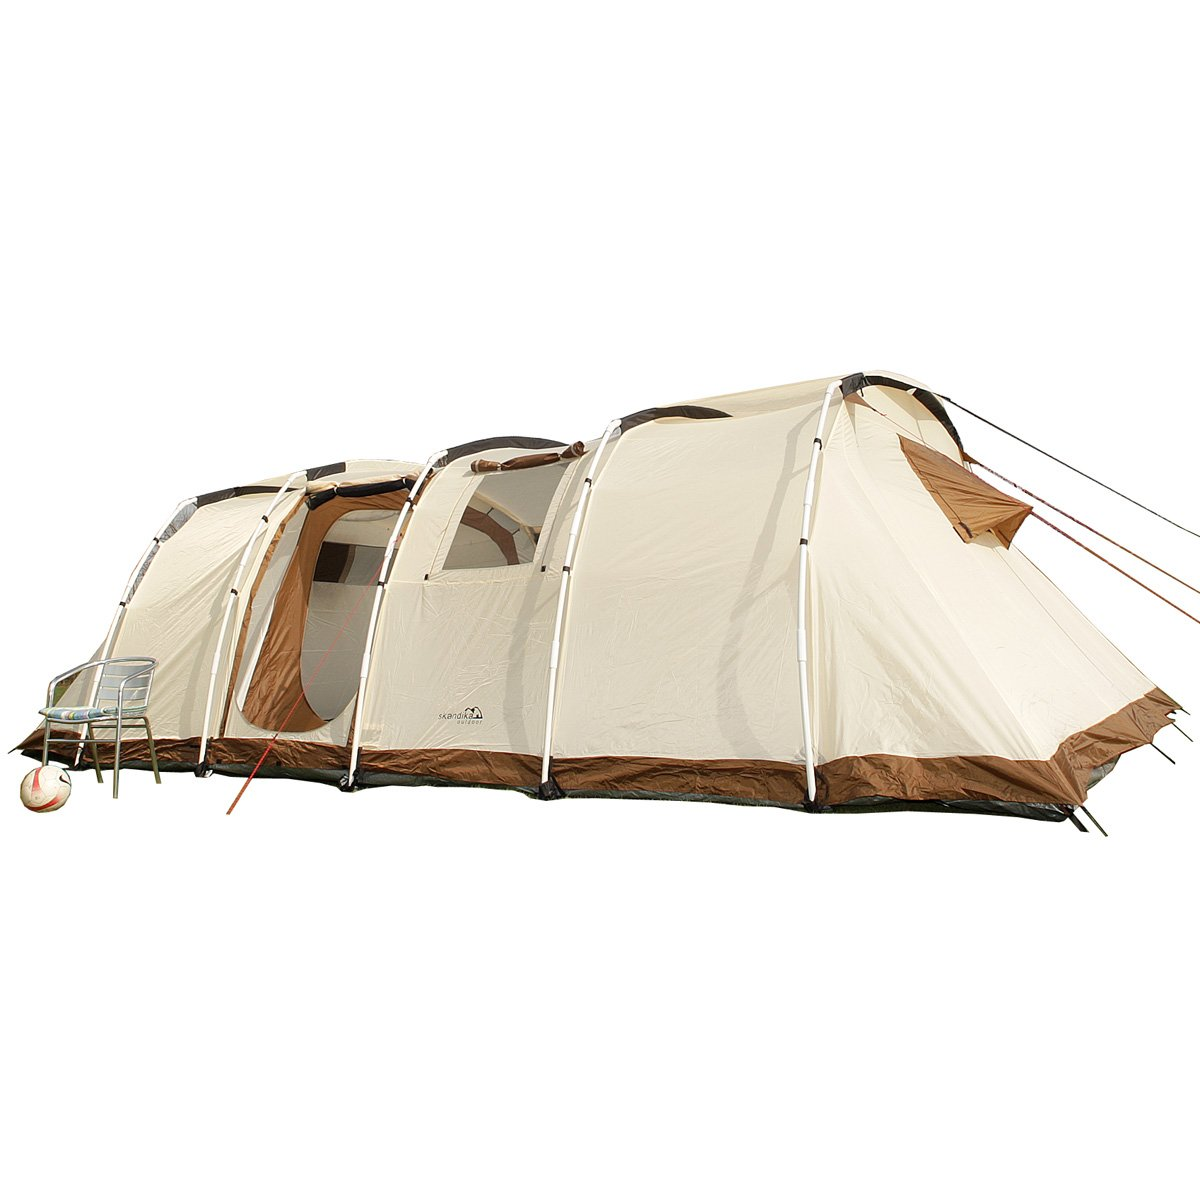 6ef6a817775 Skandika Casablanca 12 Man Family Tent: Amazon.co.uk: Sports & Outdoors